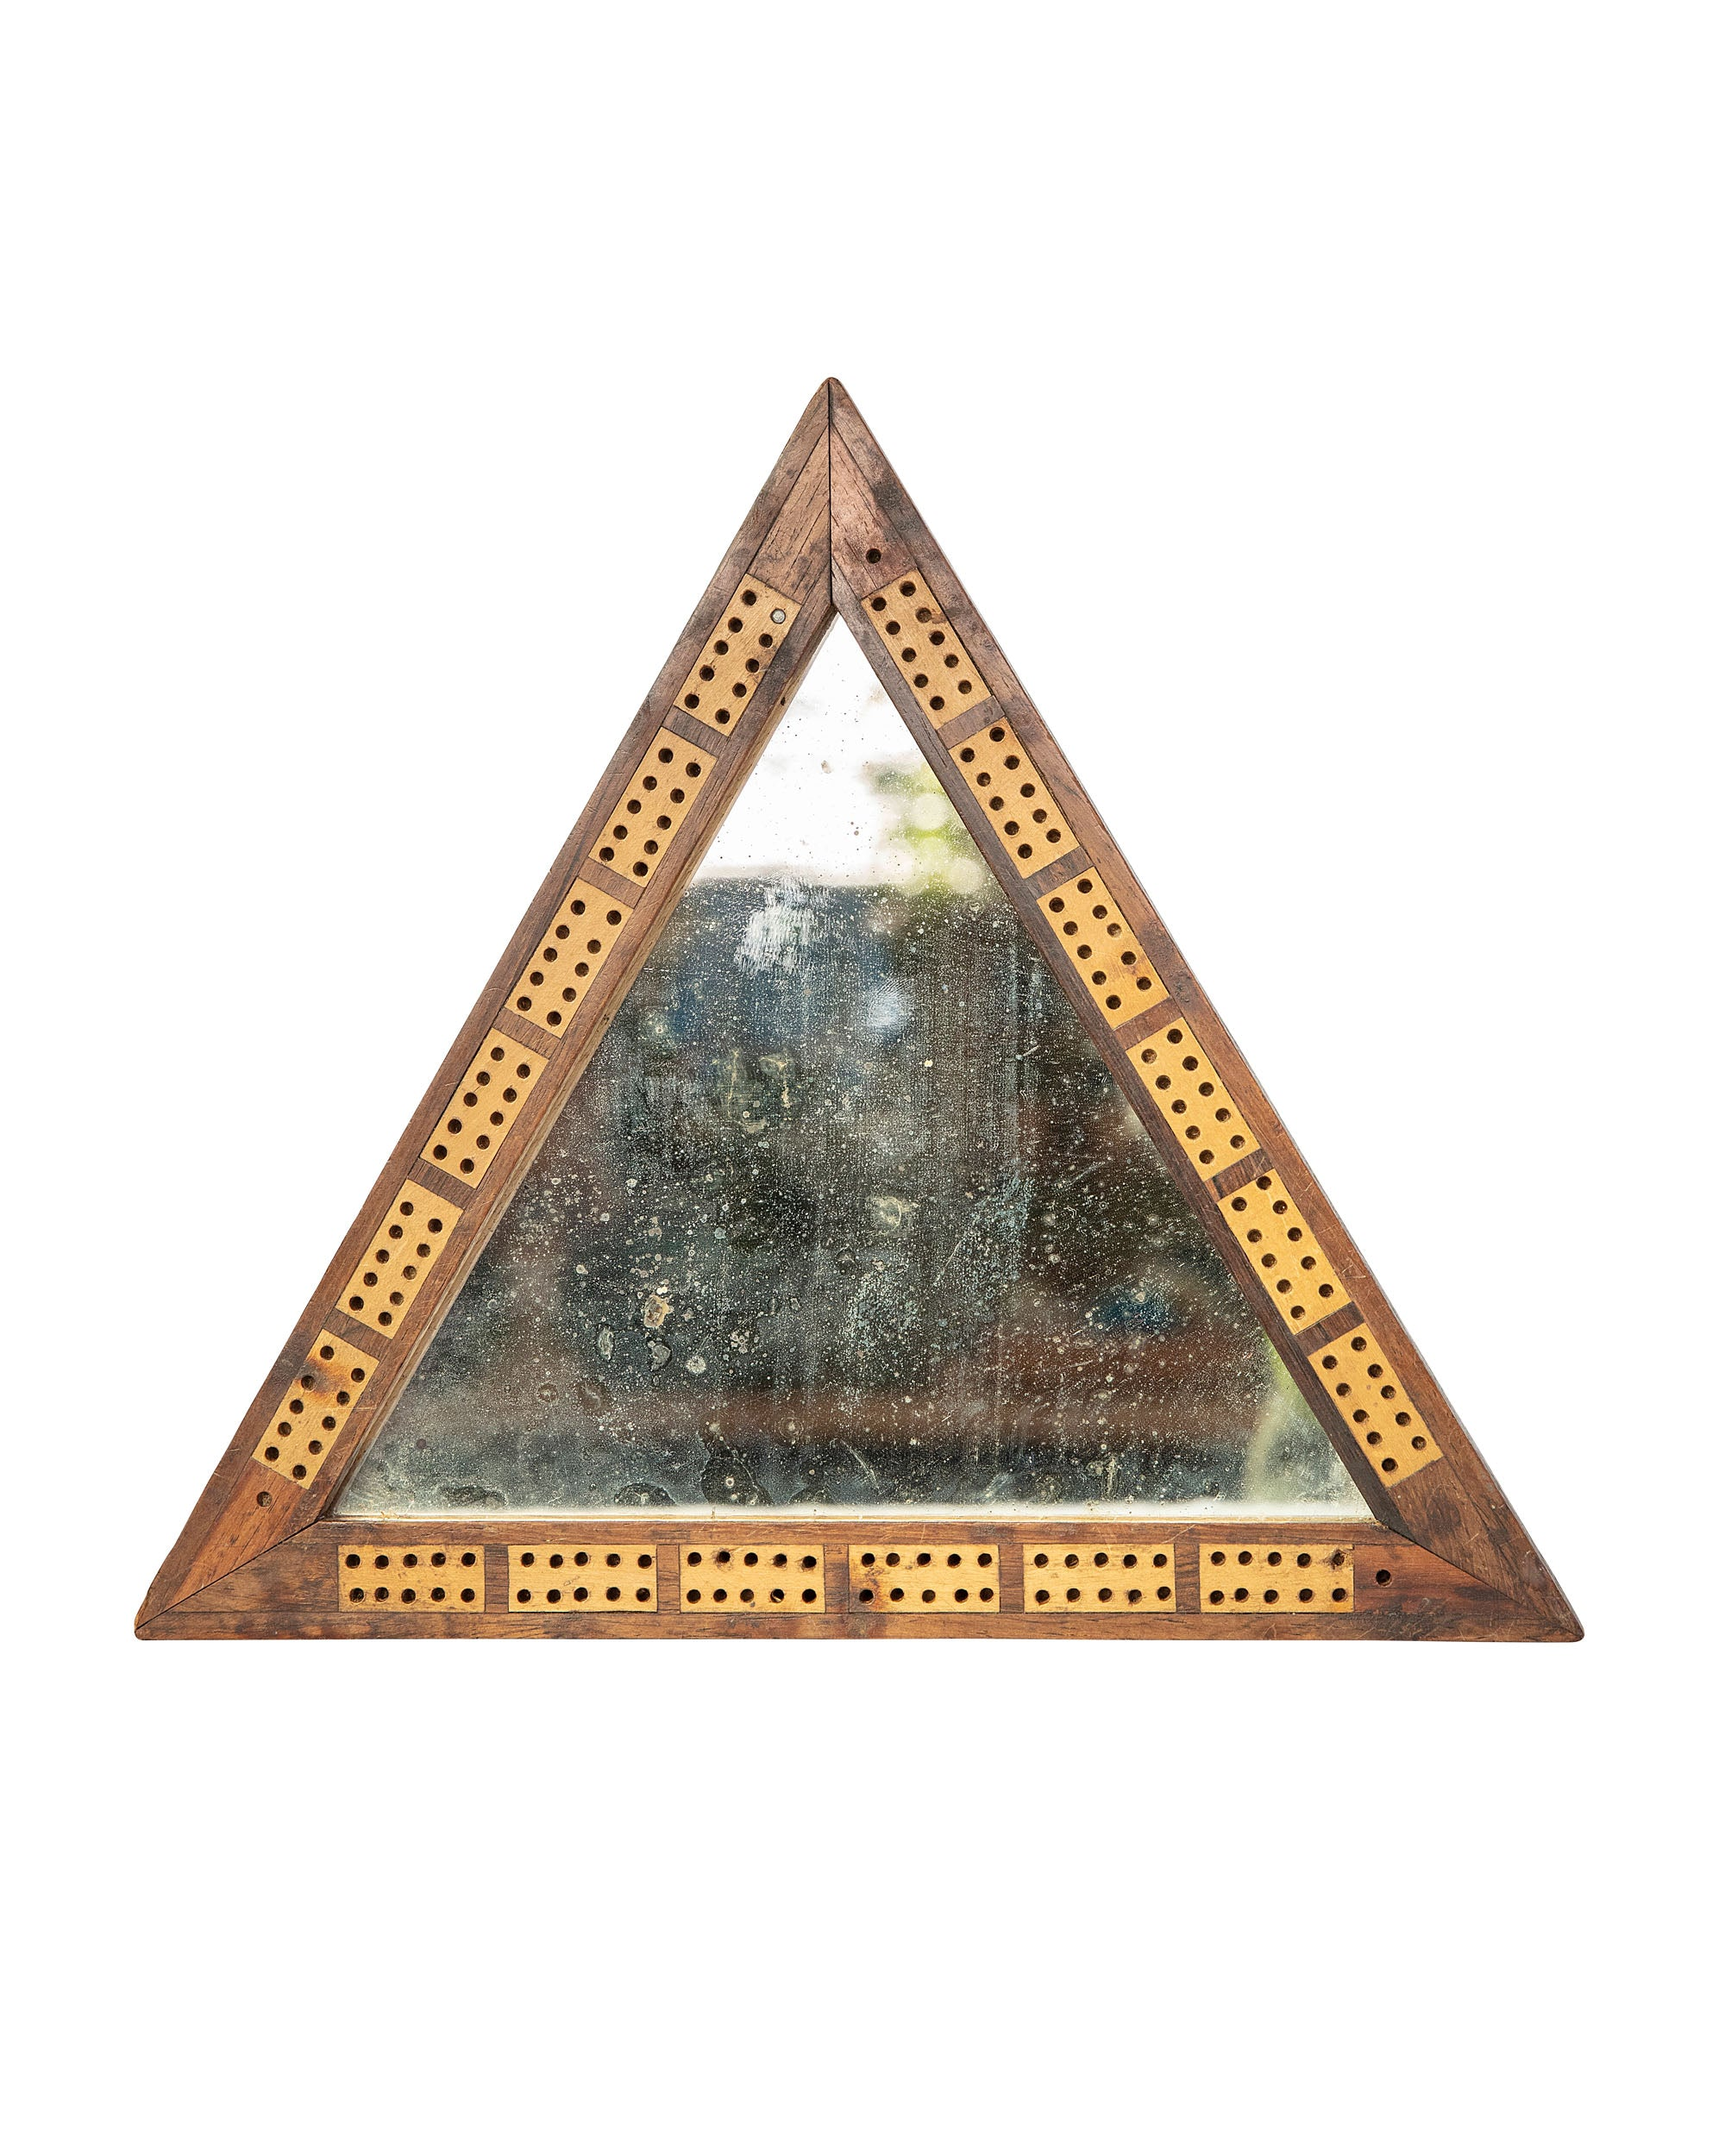 Triangular mirror with wooden frame with domino pieces